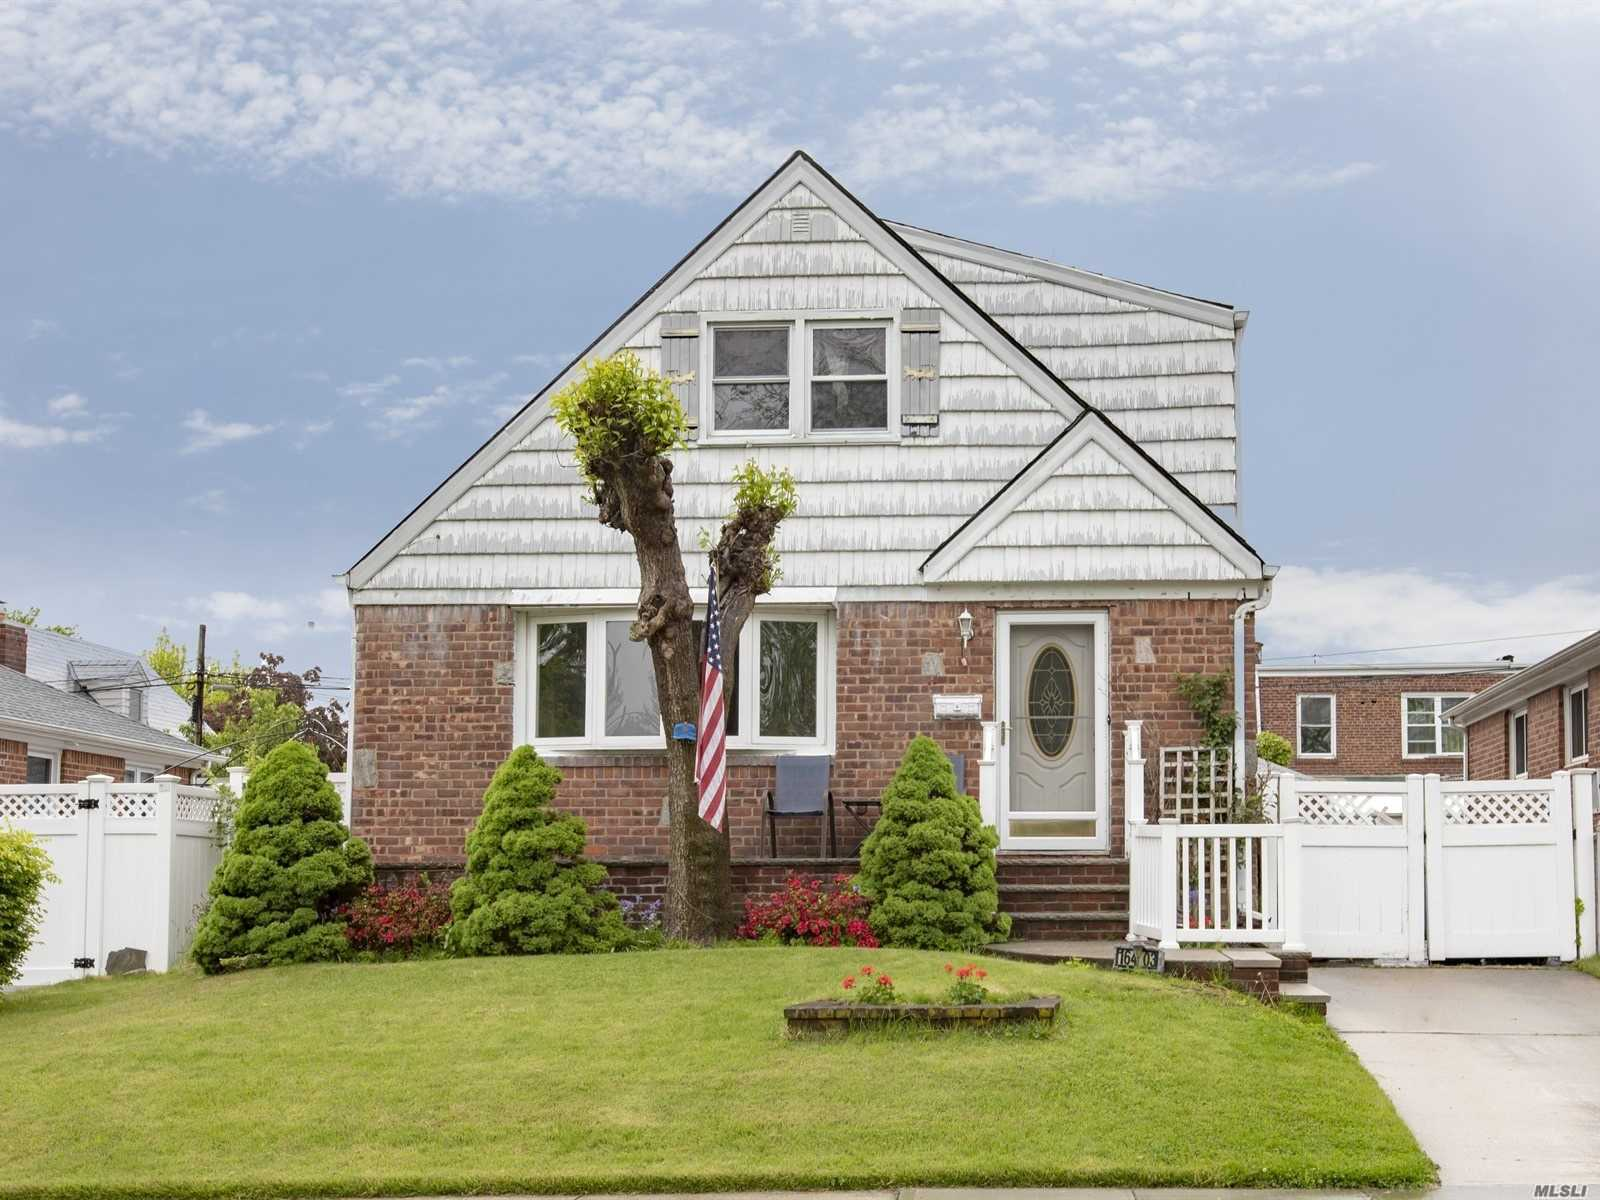 Expanded Cape Cod on tree lined street in beautiful North Flushing. Welcoming porch great for summer night gatherings. Curb appeal for sure! Four large bedrooms not seen too often. Updated bathrooms and a newly renovated expansive lower level. This charmer is in the best location ever. Public transportation, shopping, highways all within close proximity. This is a feel good house waiting for a new story...